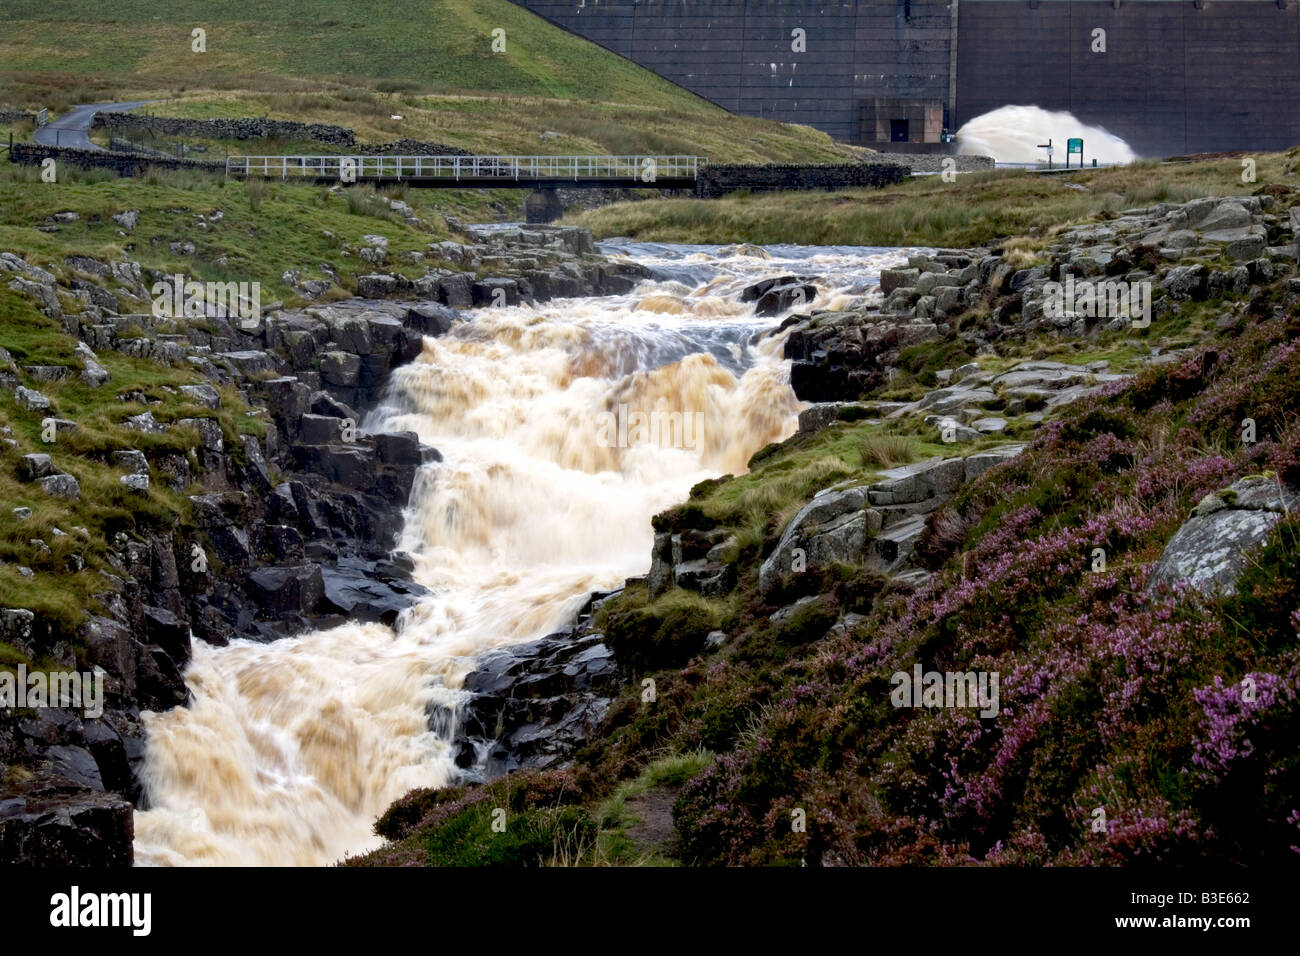 Cauldron Snout waterfall Upper Teesdale - Stock Image